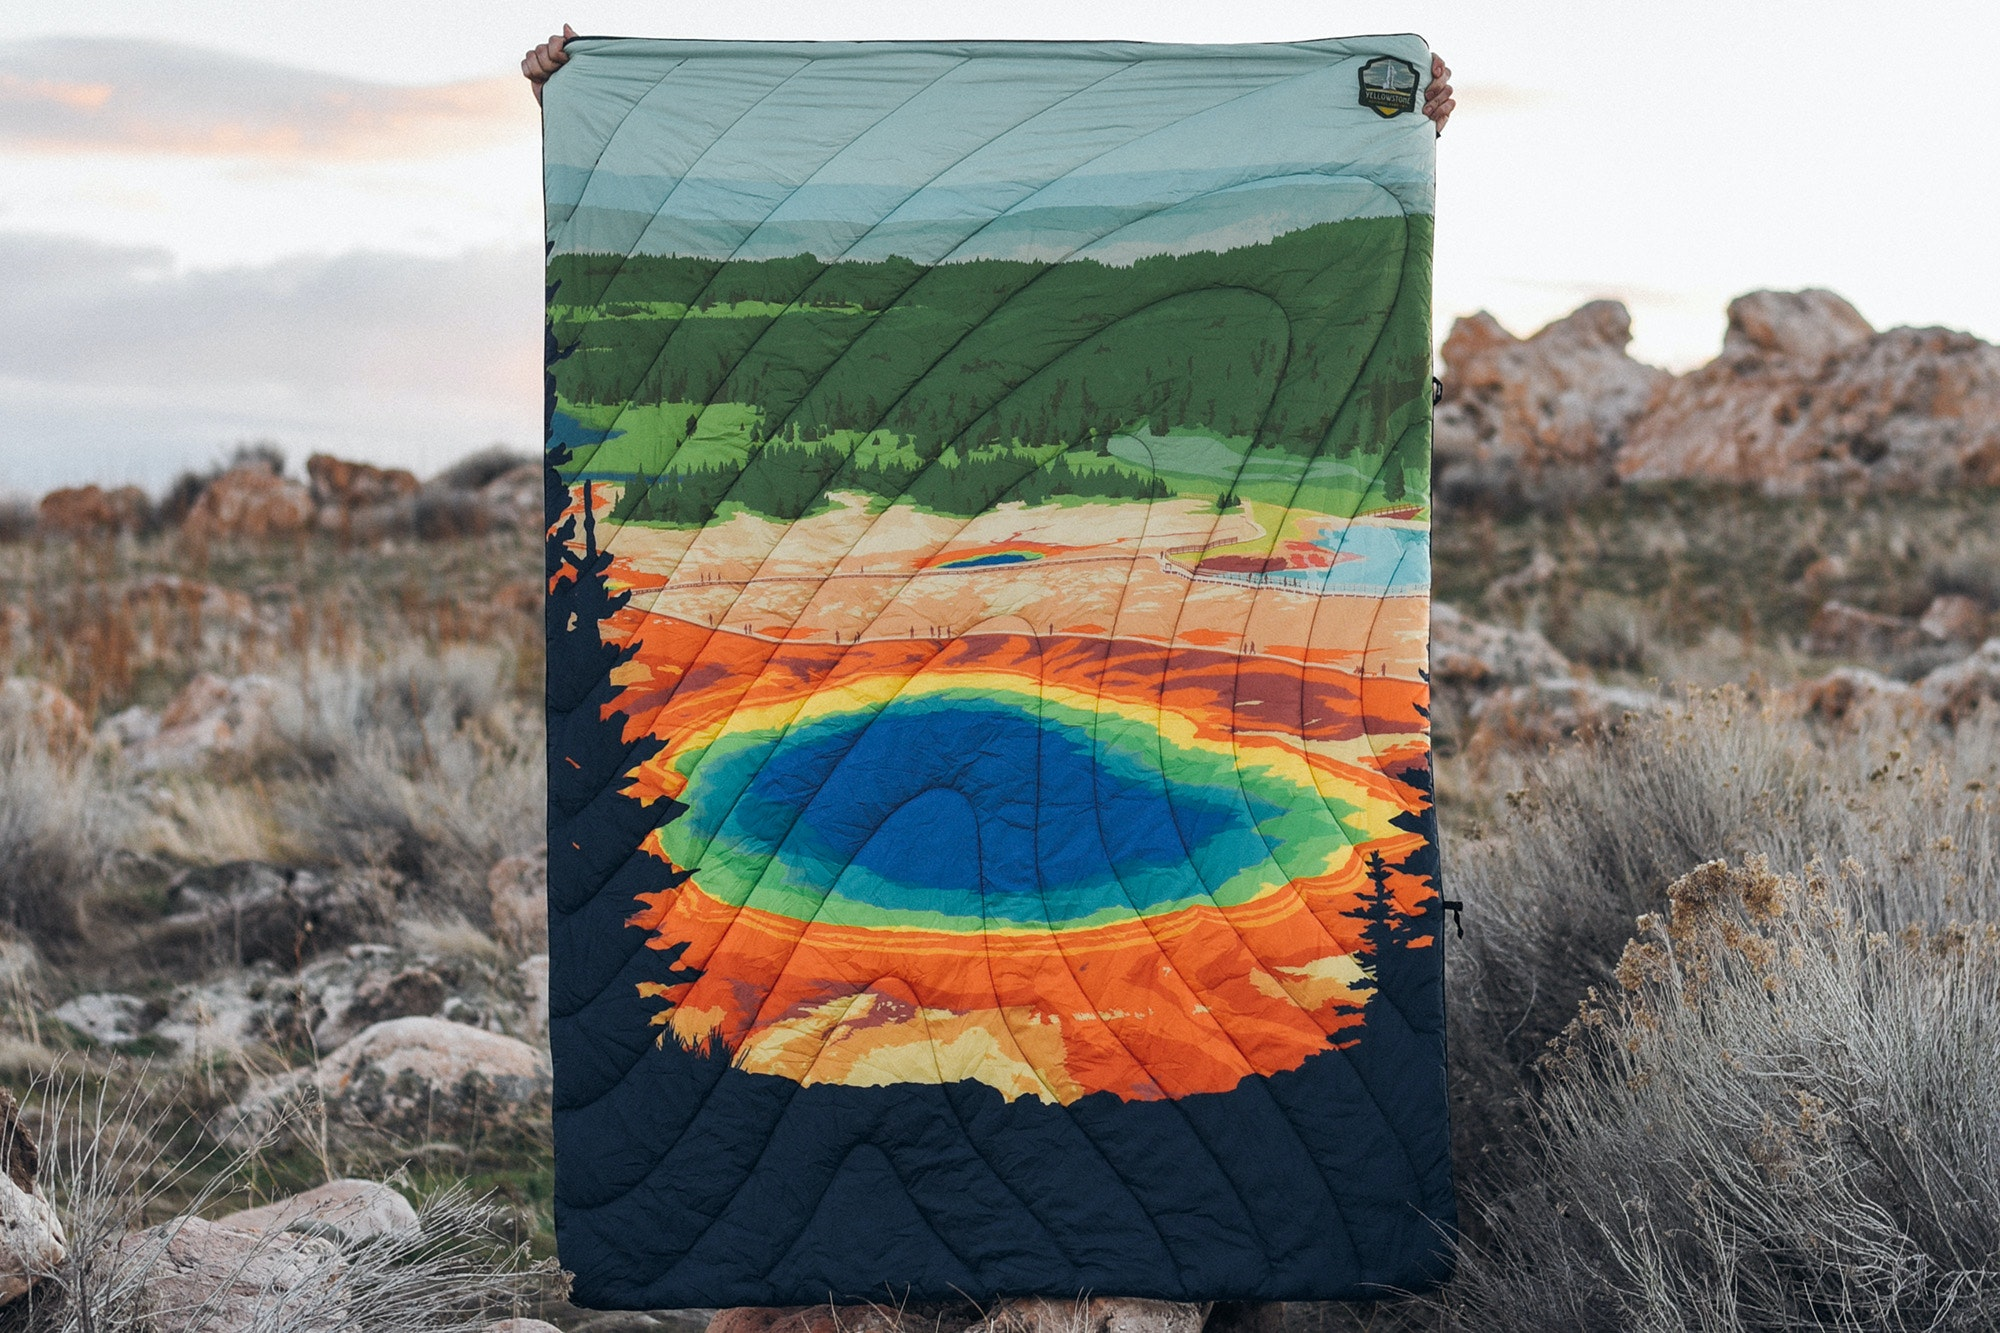 6 National Parks Merchandise And Clothing Collections That Give Back